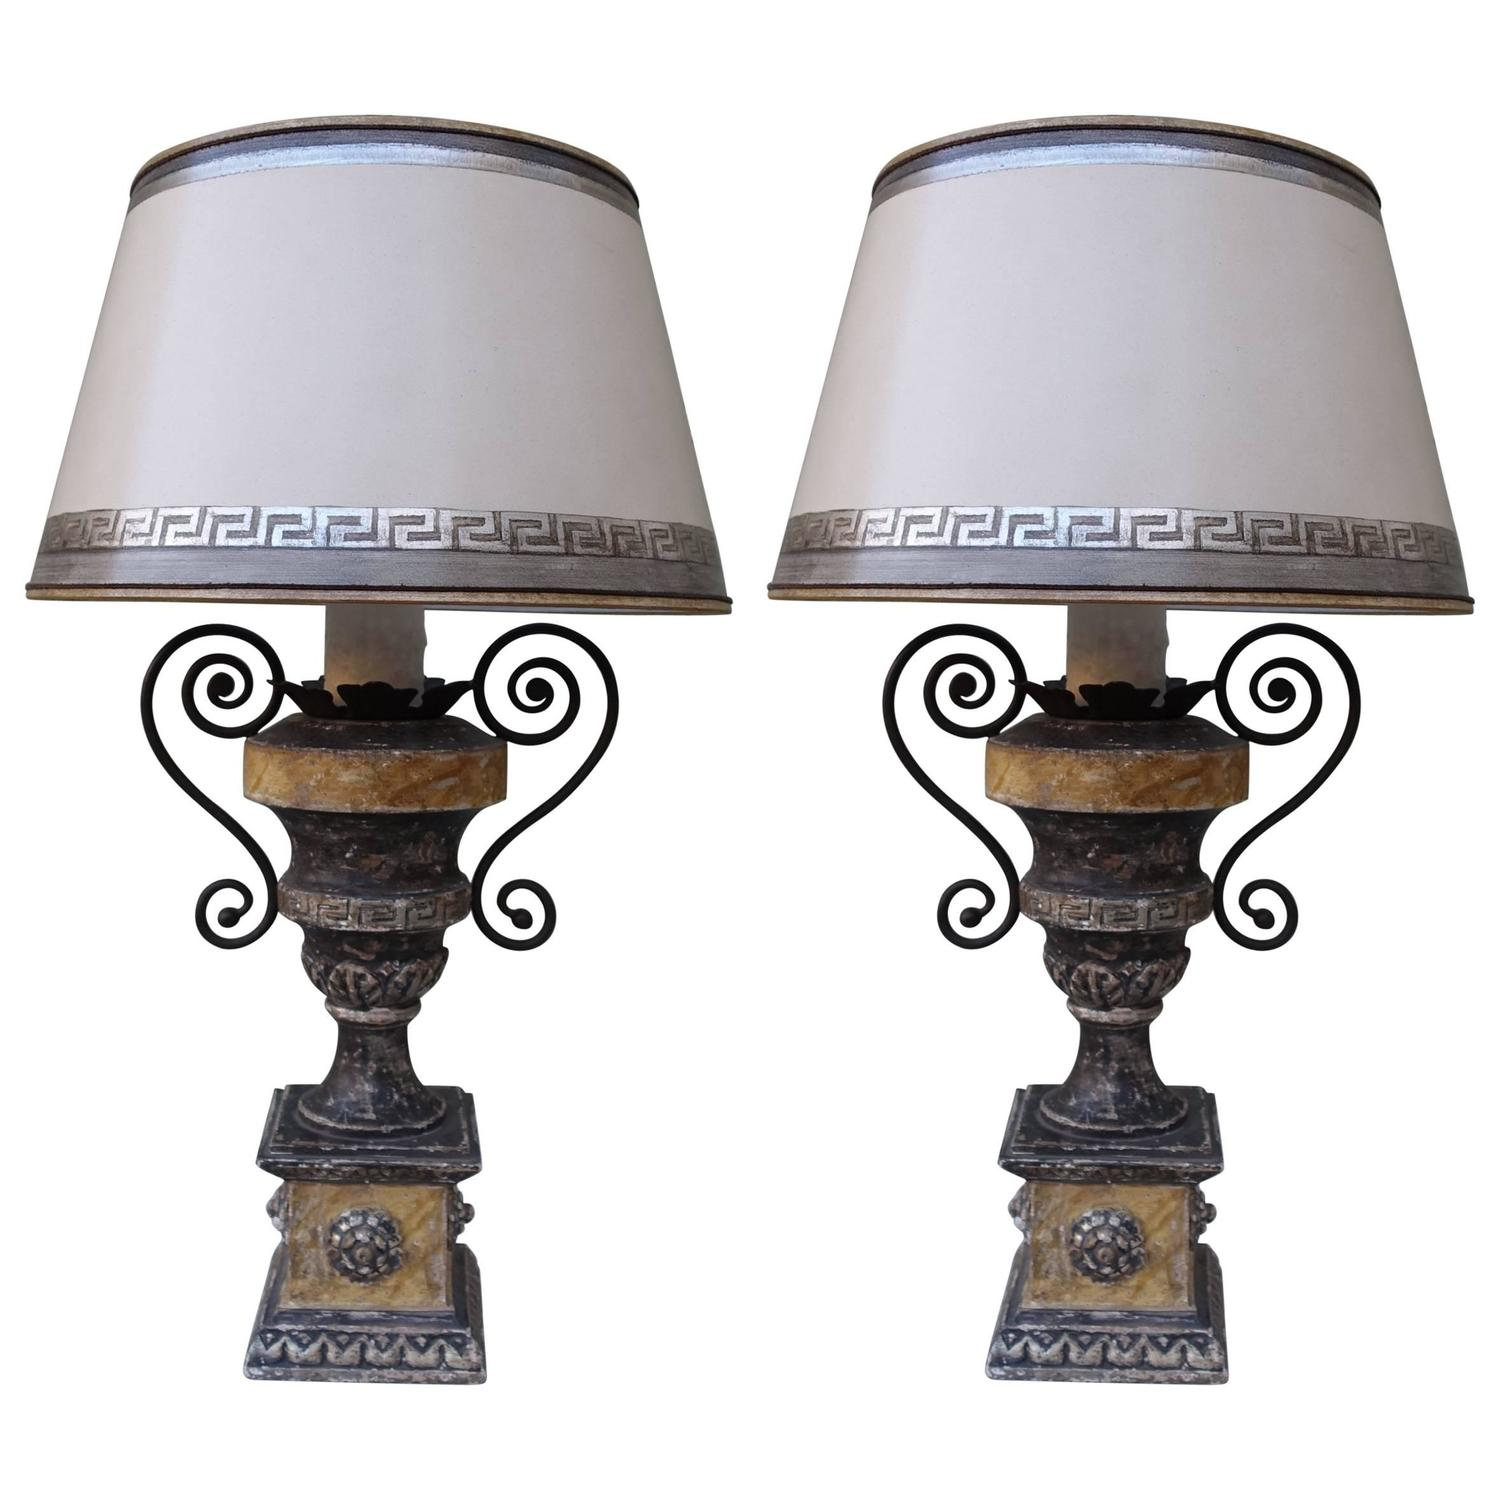 neoclassical lighting. Pair Of Neoclassical Style Painted Urn Lamps With Shades Lighting